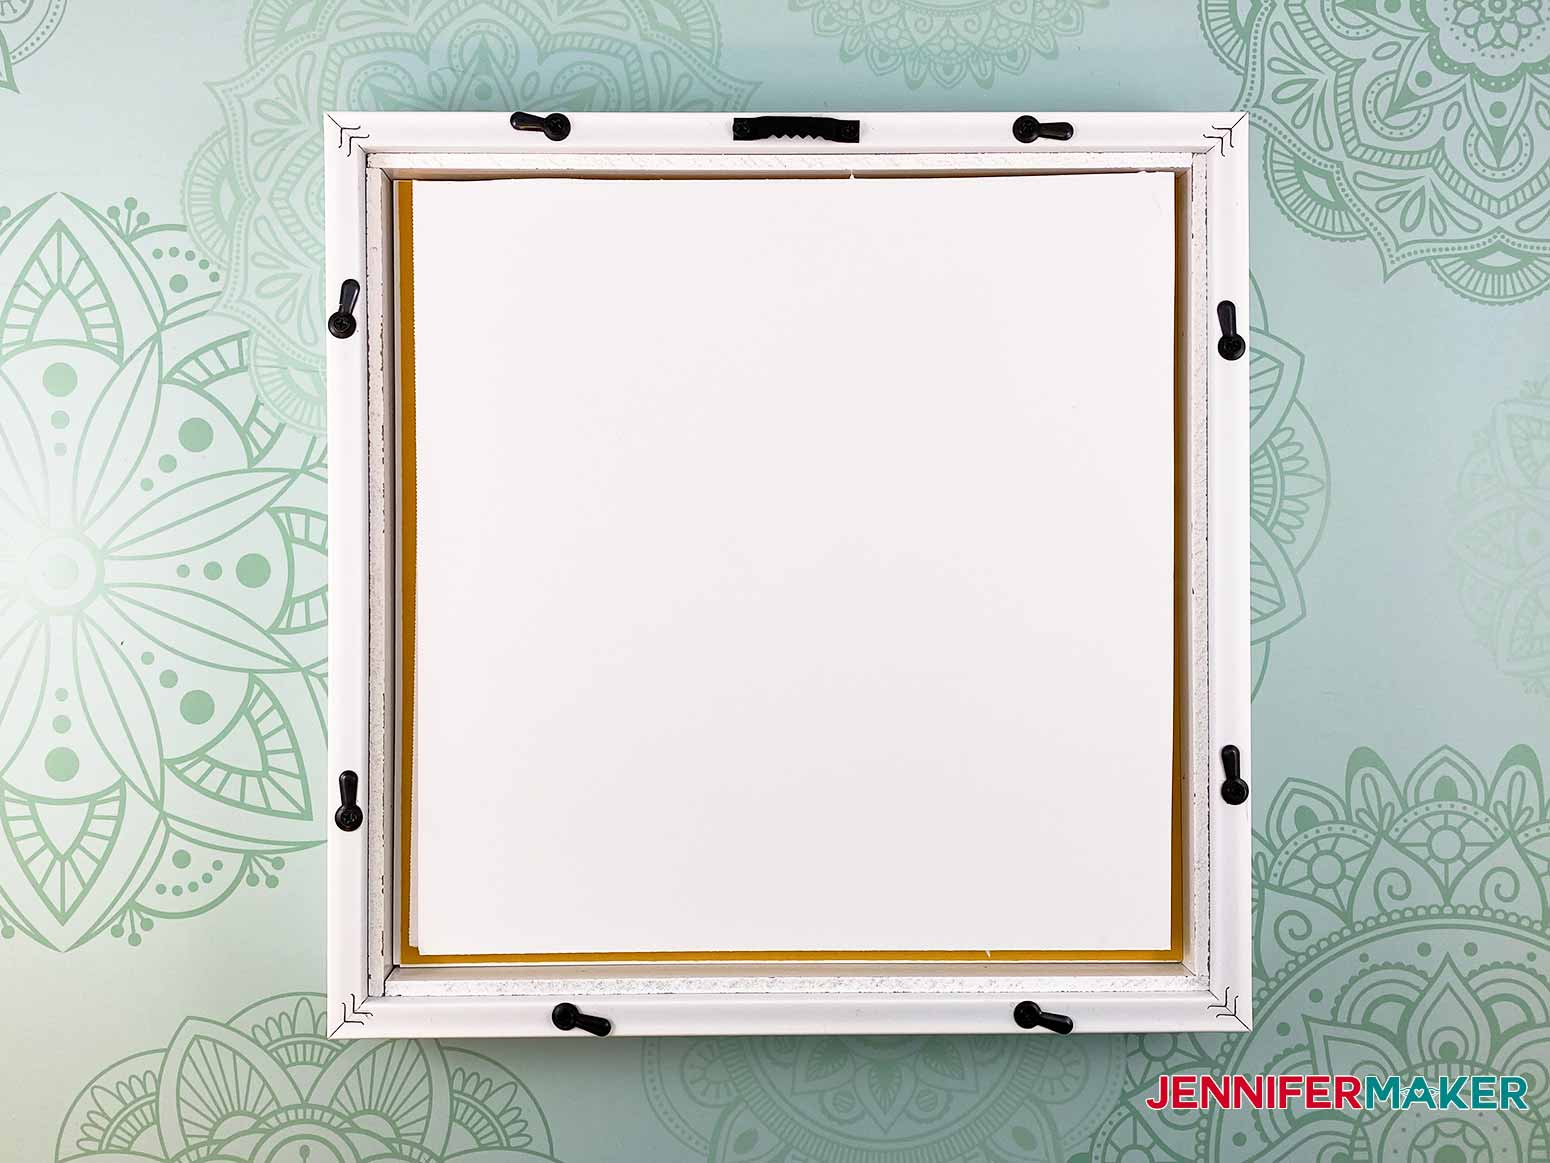 Add foam core to the back of the picture frame to prevent the stacked layers from moving